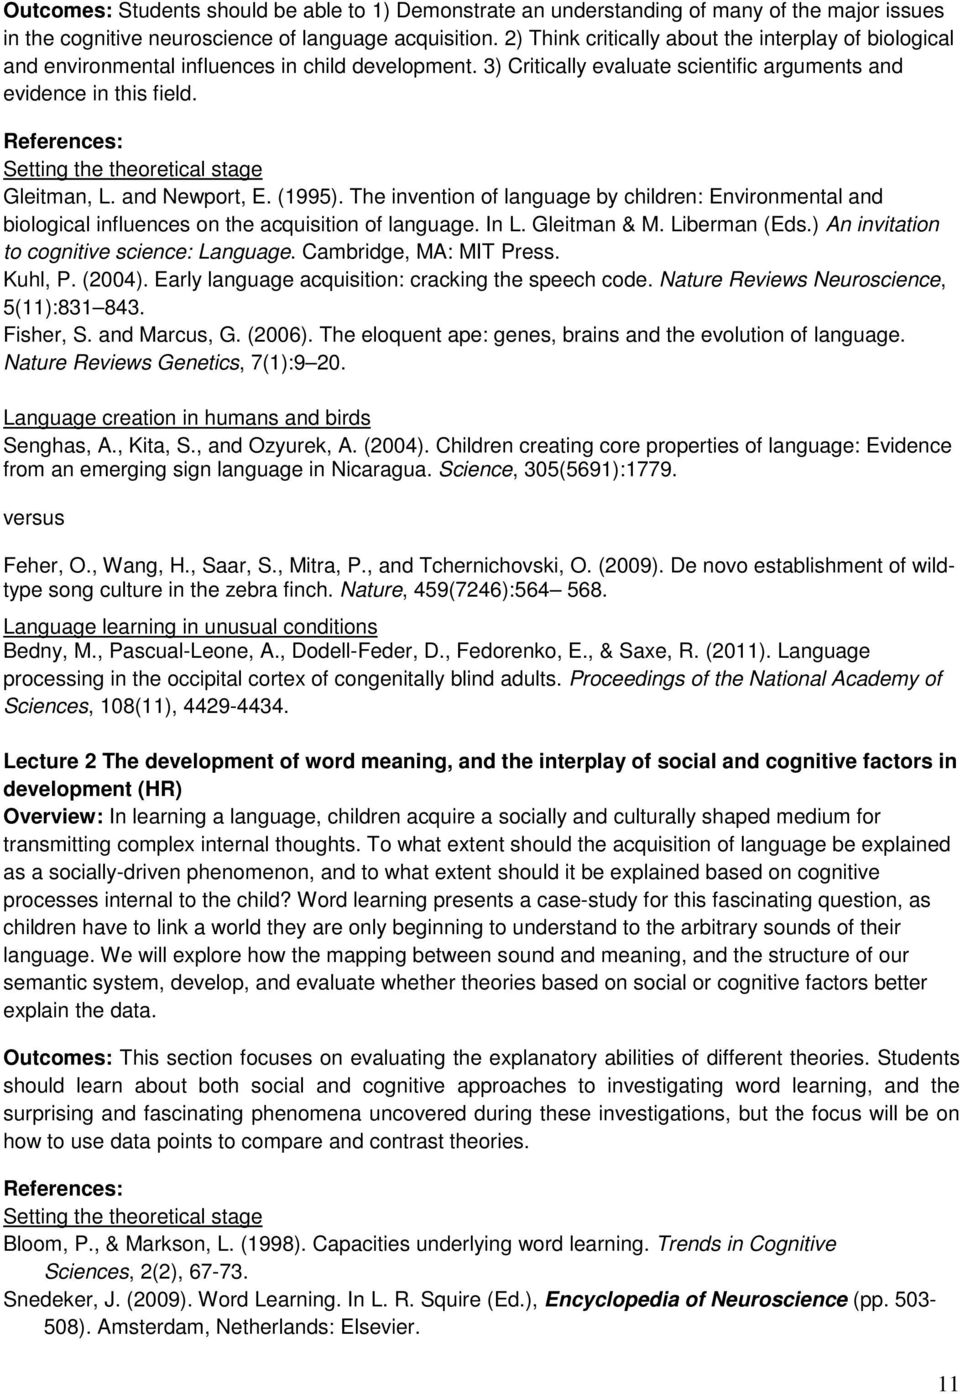 References: Setting the theoretical stage Gleitman, L. and Newport, E. (1995). The invention of language by children: Environmental and biological influences on the acquisition of language. In L.